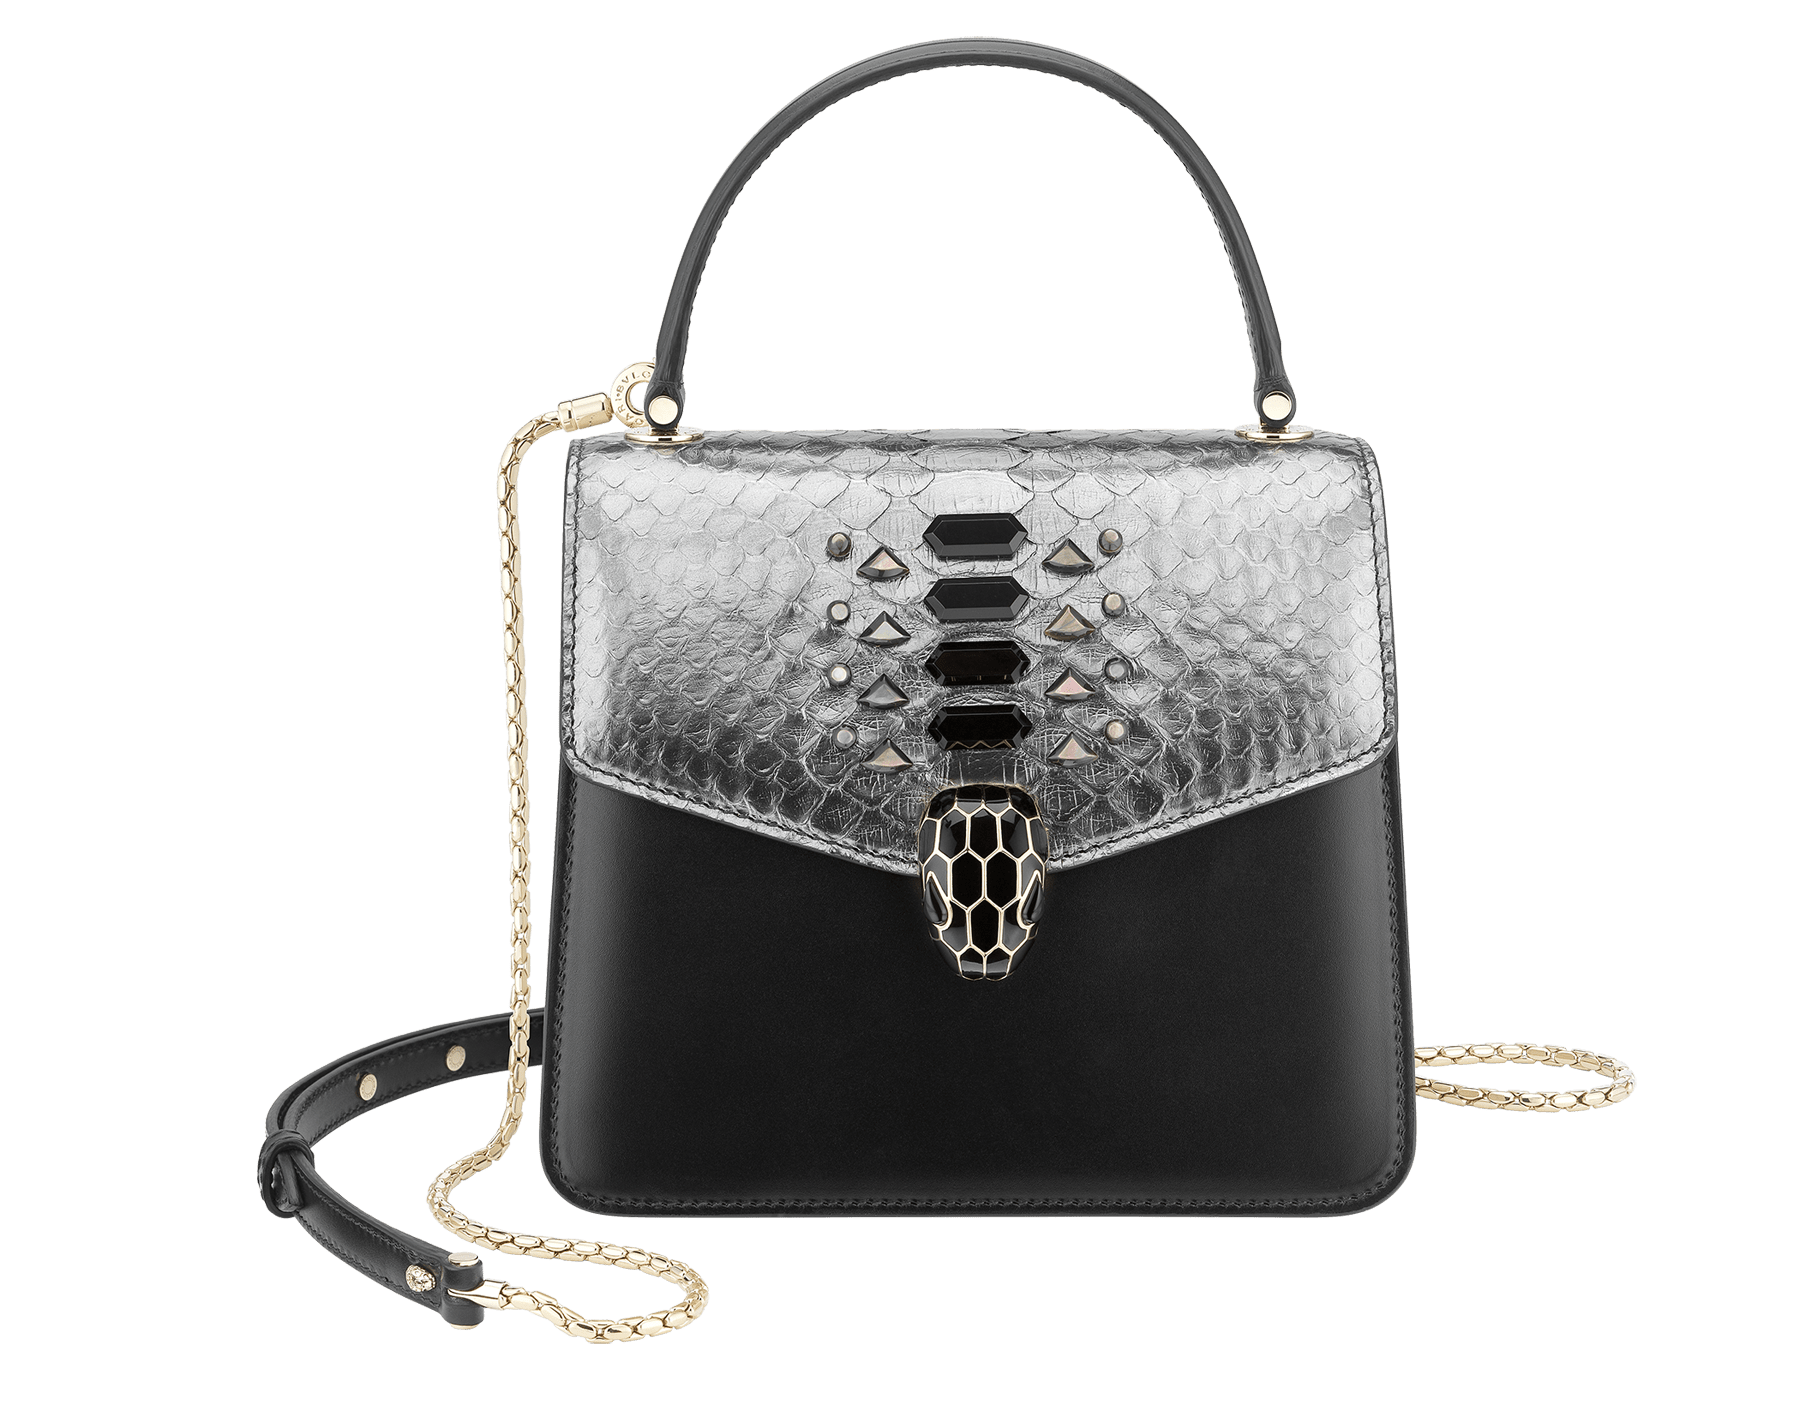 """Serpenti Forever "" crossbody bag in dark silver python skin flap with onyx scales applied and black smooth calf leather body. Iconic snake head closure in light gold plated brass enriched with black enamel and black onyx eyes. 289419 image 1"